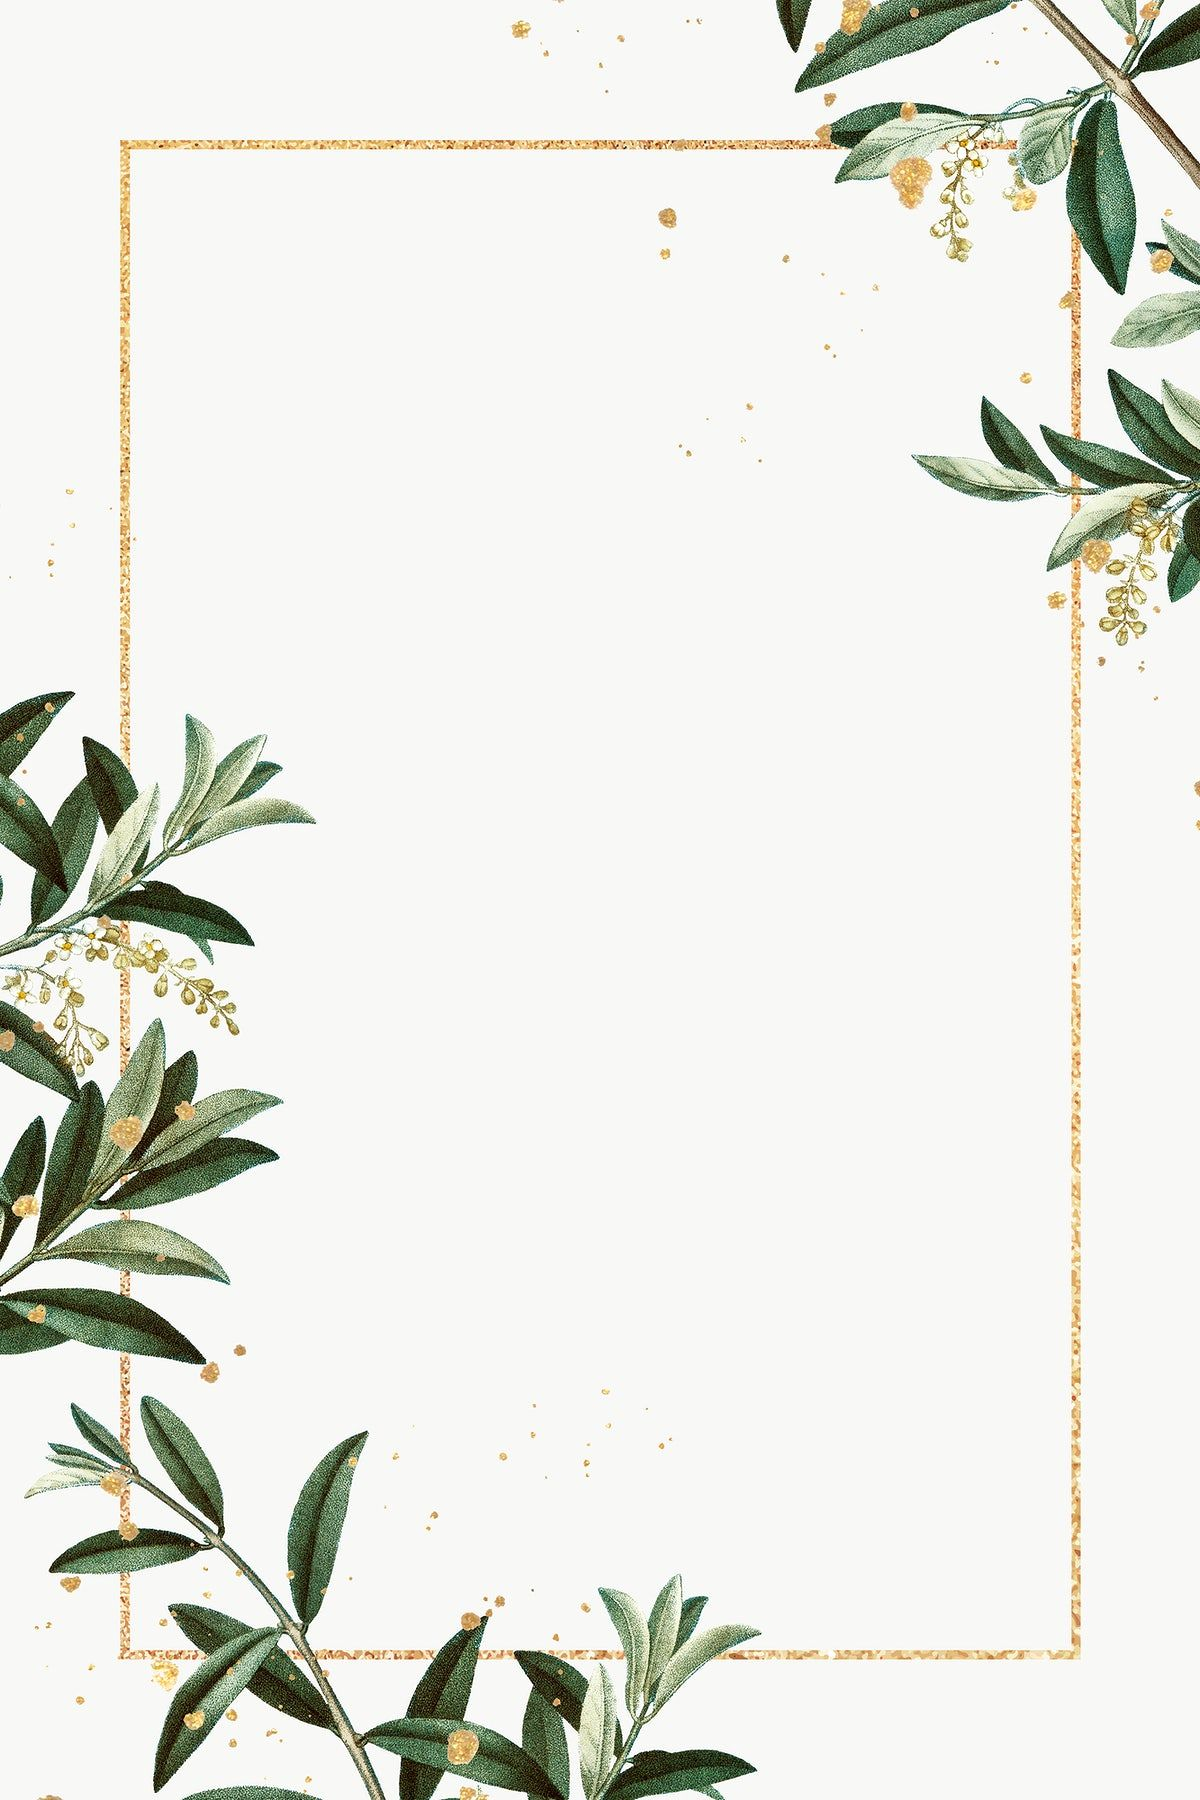 Download free png of Olive branches frame png hand drawn border design space by Ning about olive branch, olive, nature wallpaper, Green leaves frame, and frame png 2523395